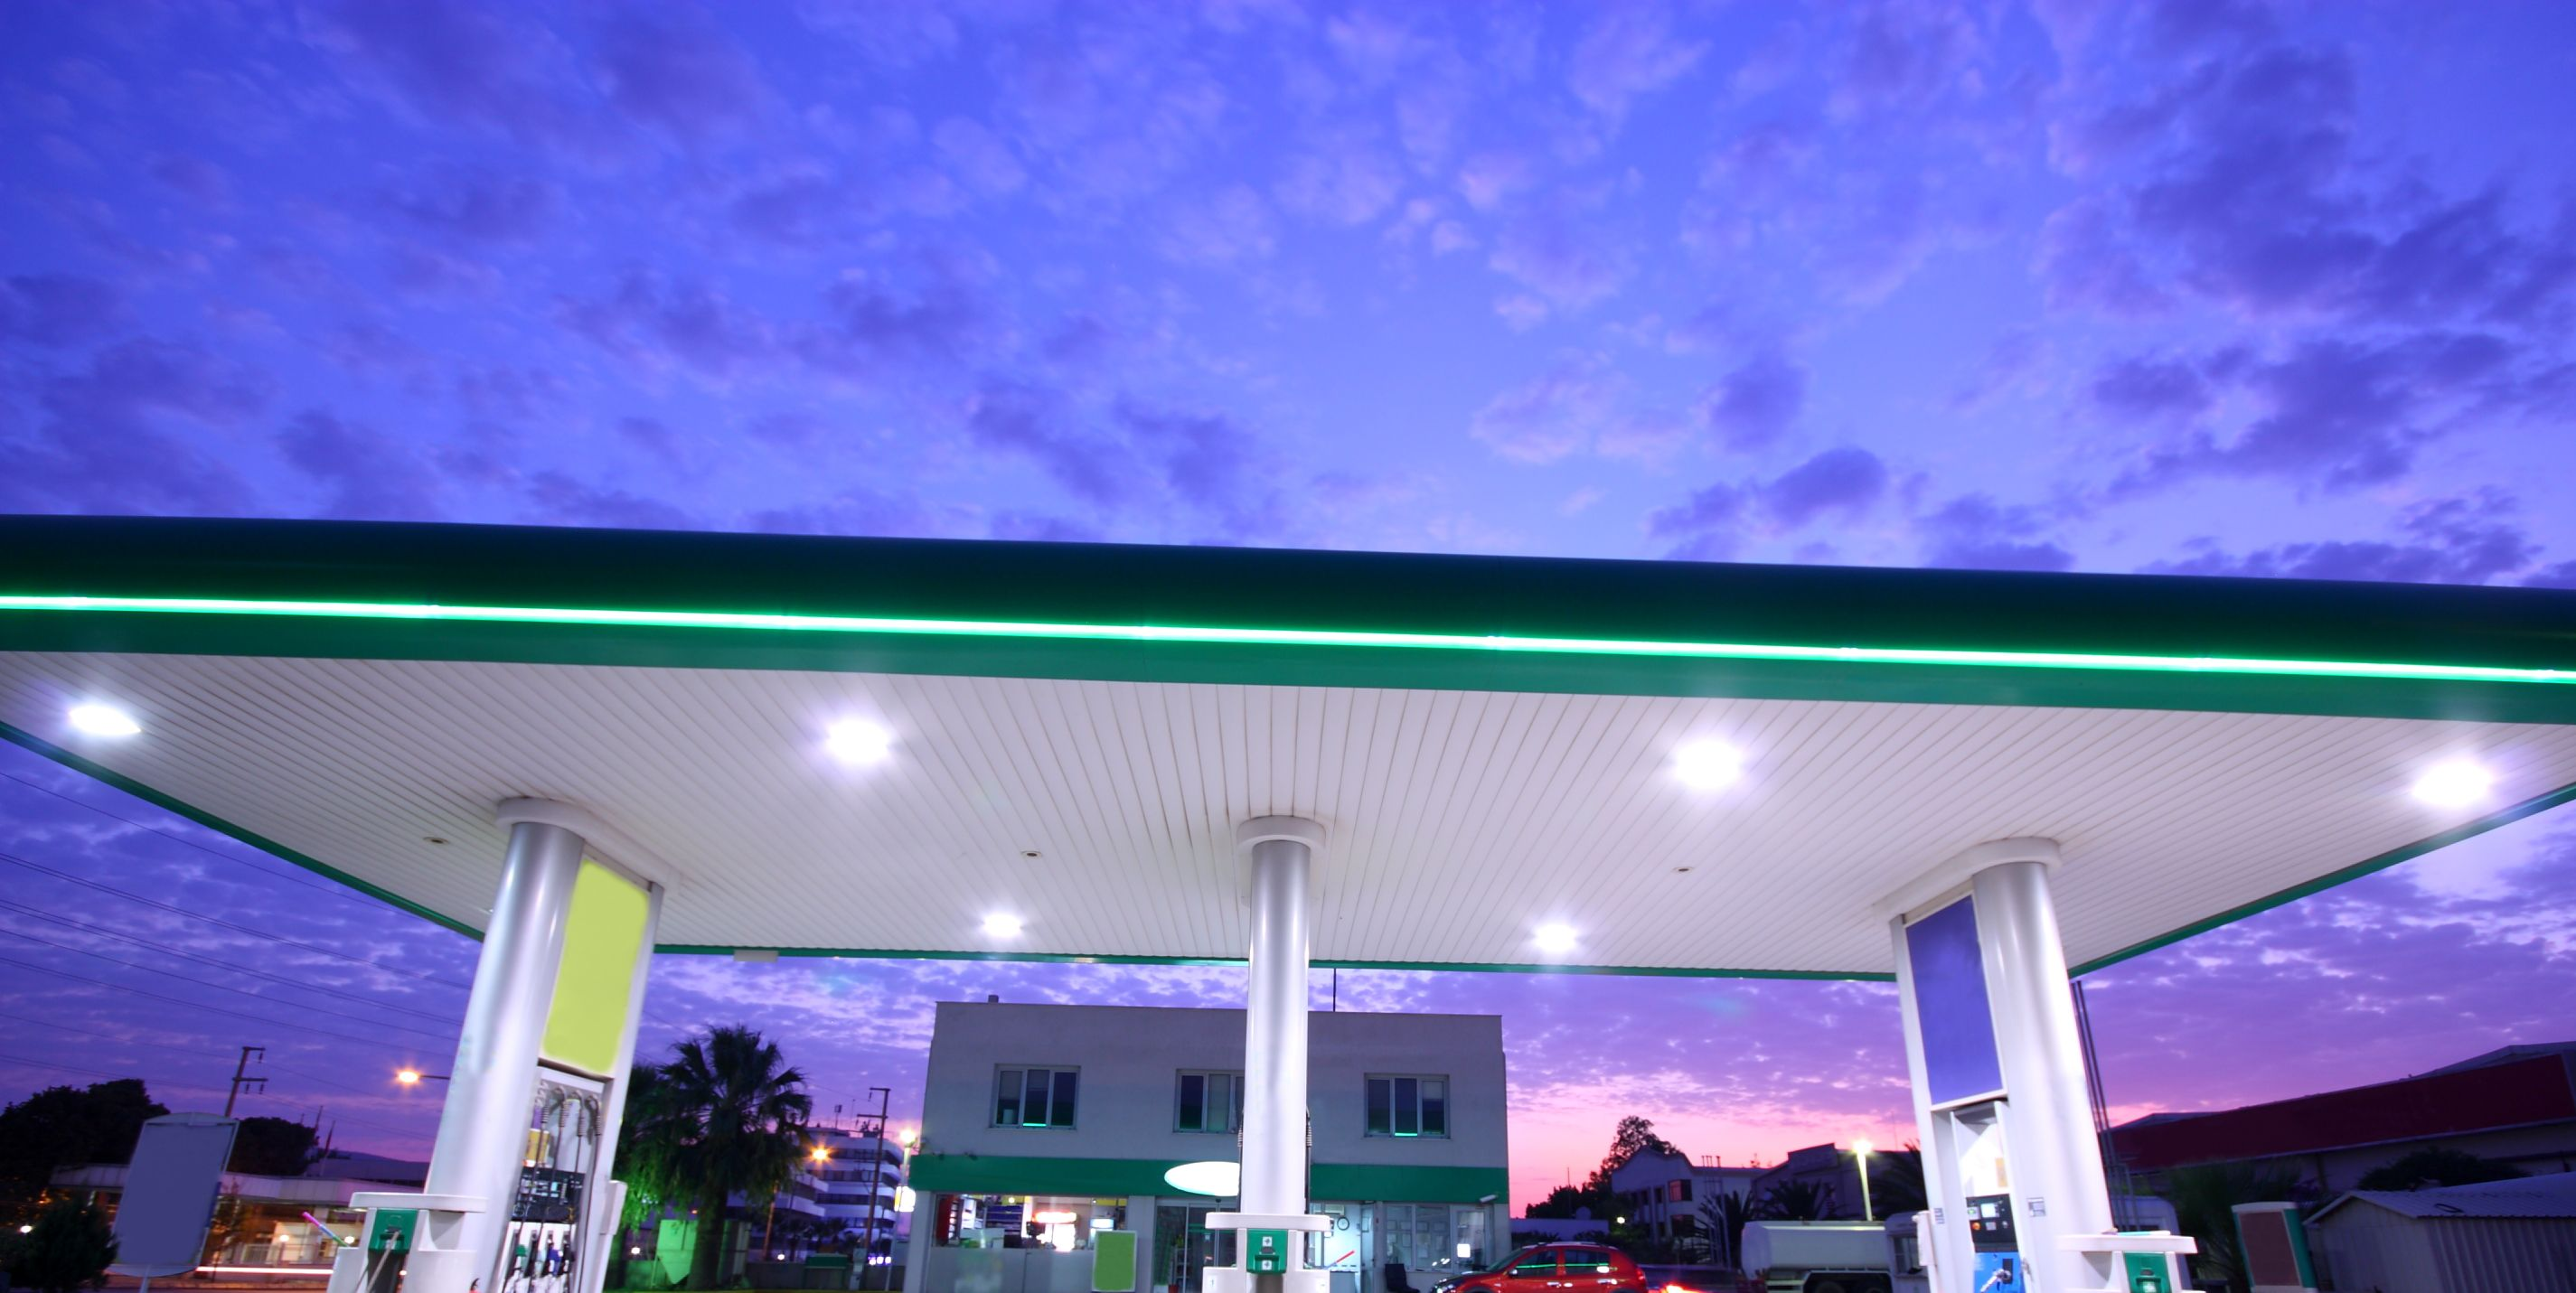 Gas Prices Headed Down, Down, Down during Coronavirus Pandemic